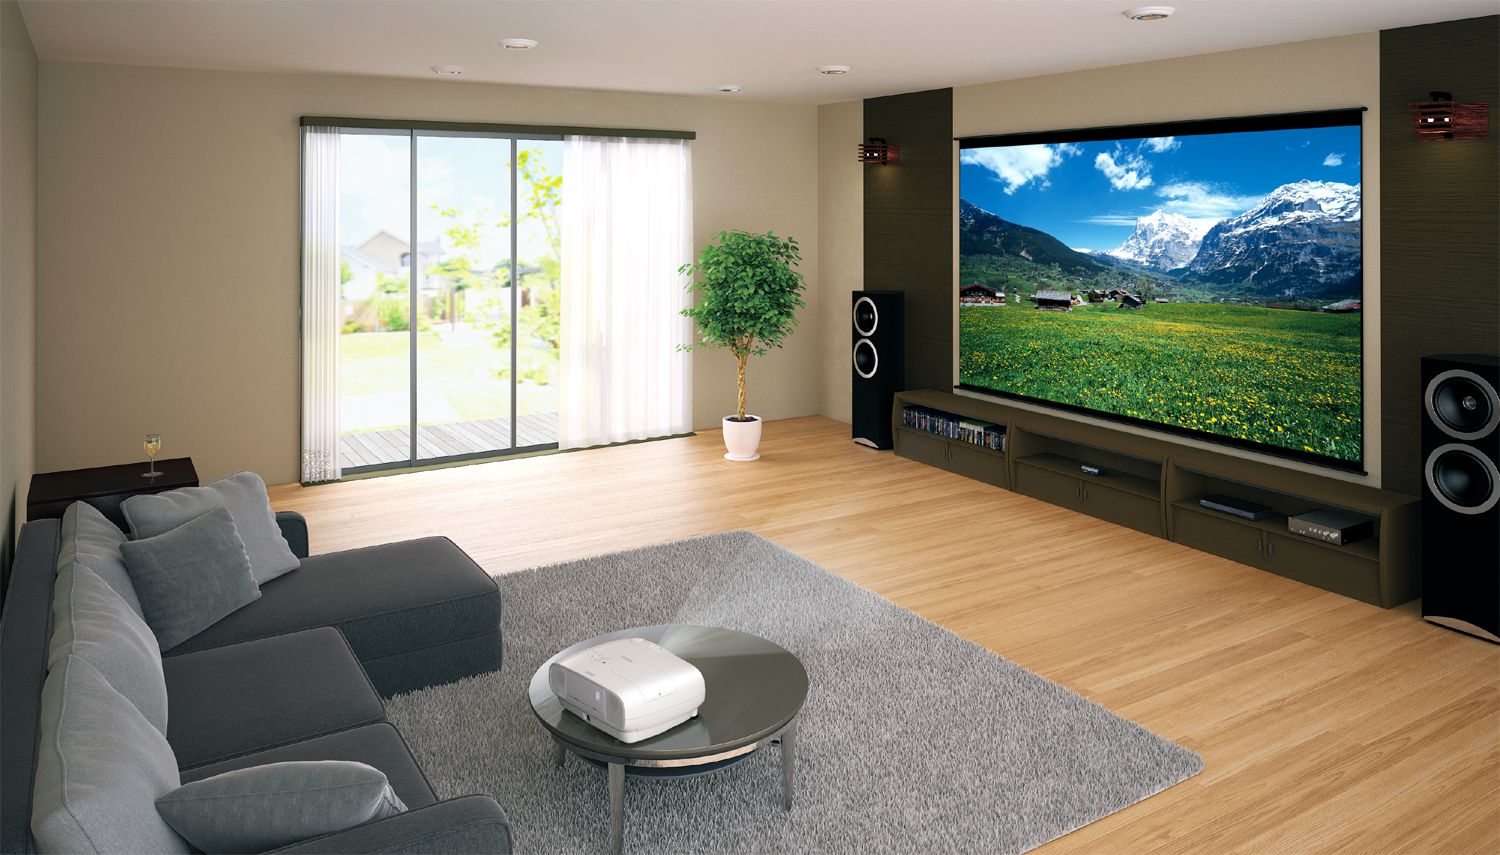 Video Projectors And Video Projection Guide